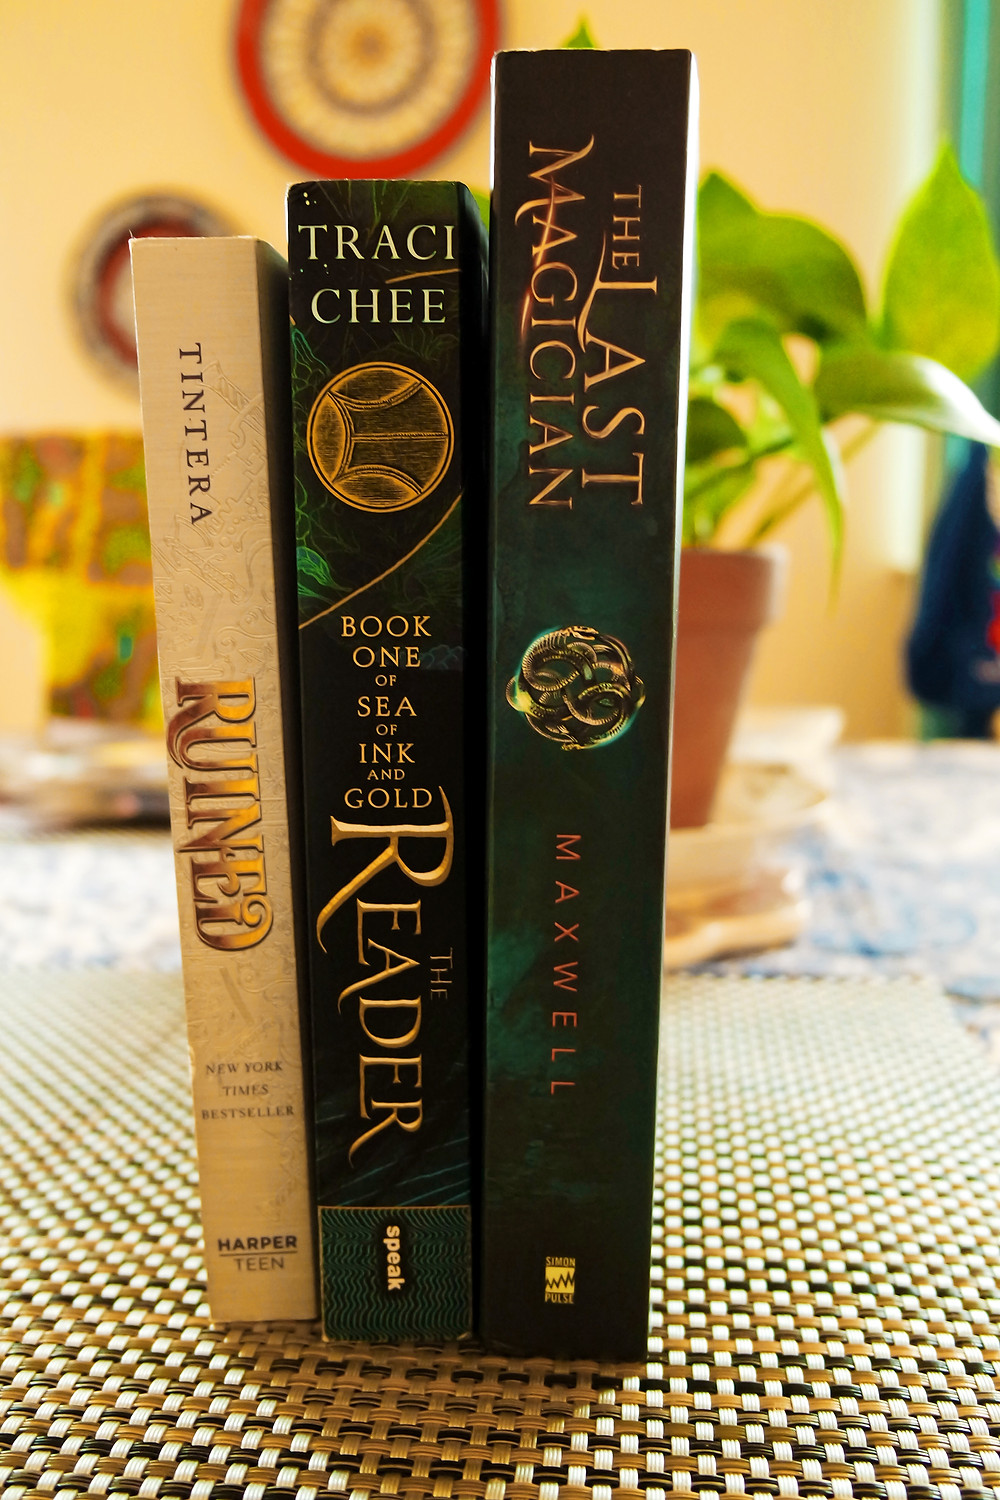 October Books - Ruined, The Reader, The Last Magician